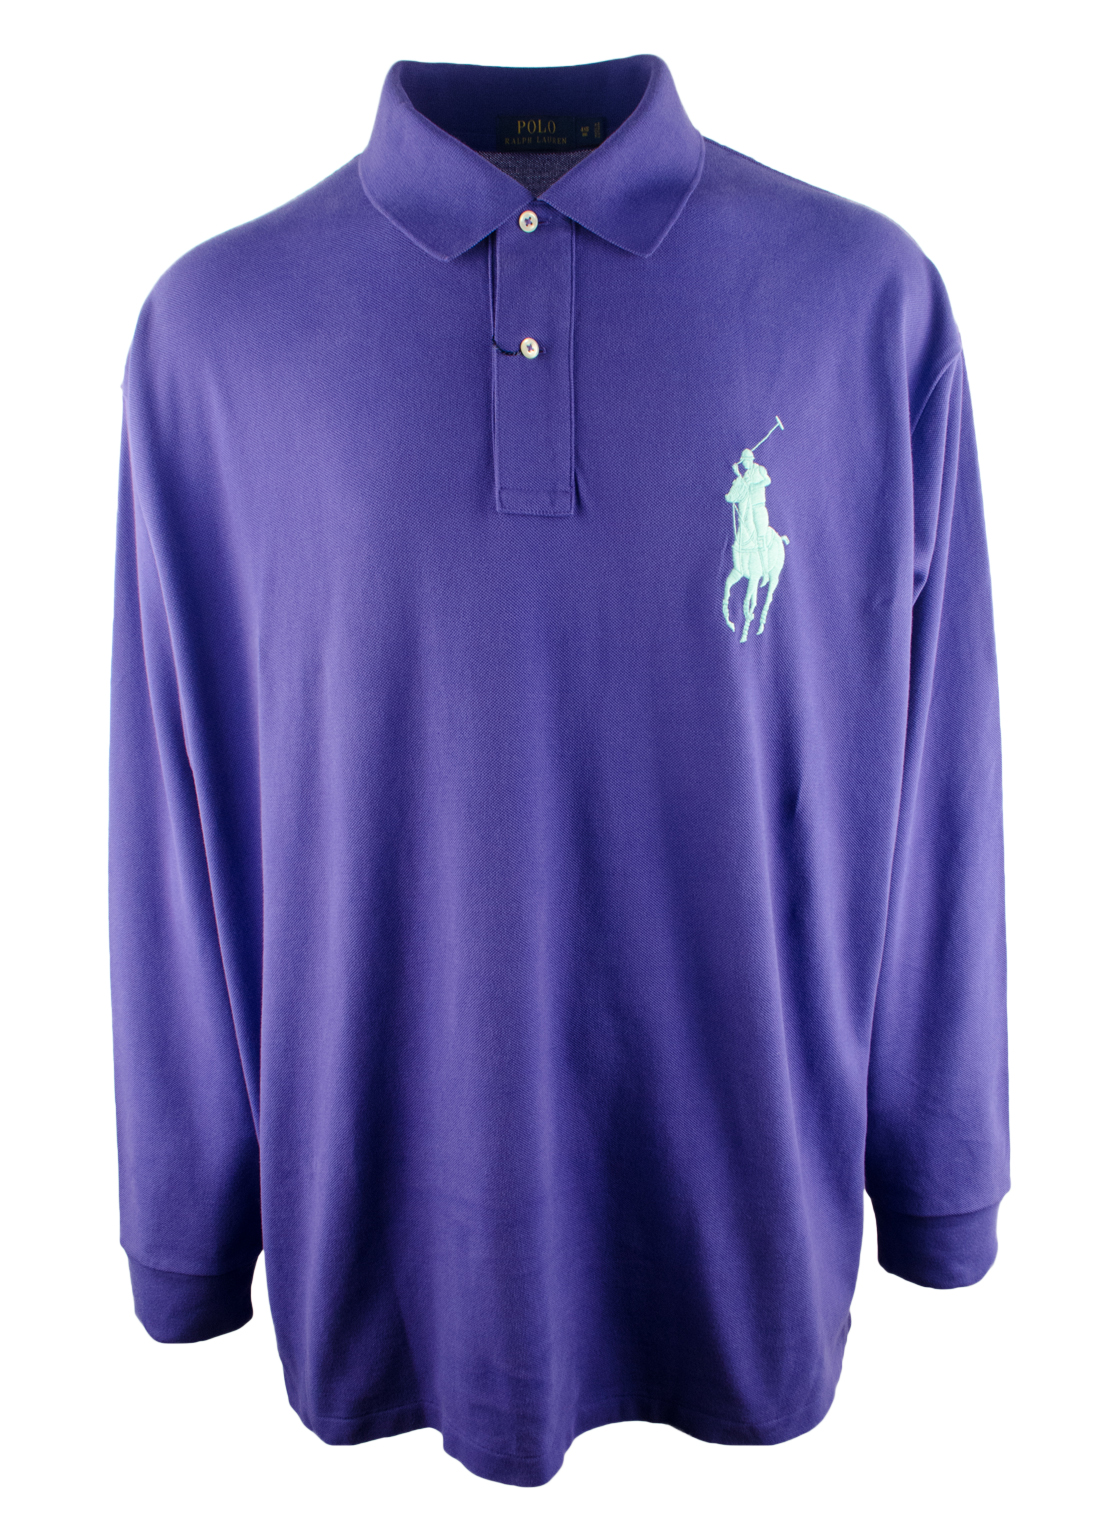 Polo ralph lauren men 39 s big and tall classic fit long for Big and tall men s long sleeve polo shirts